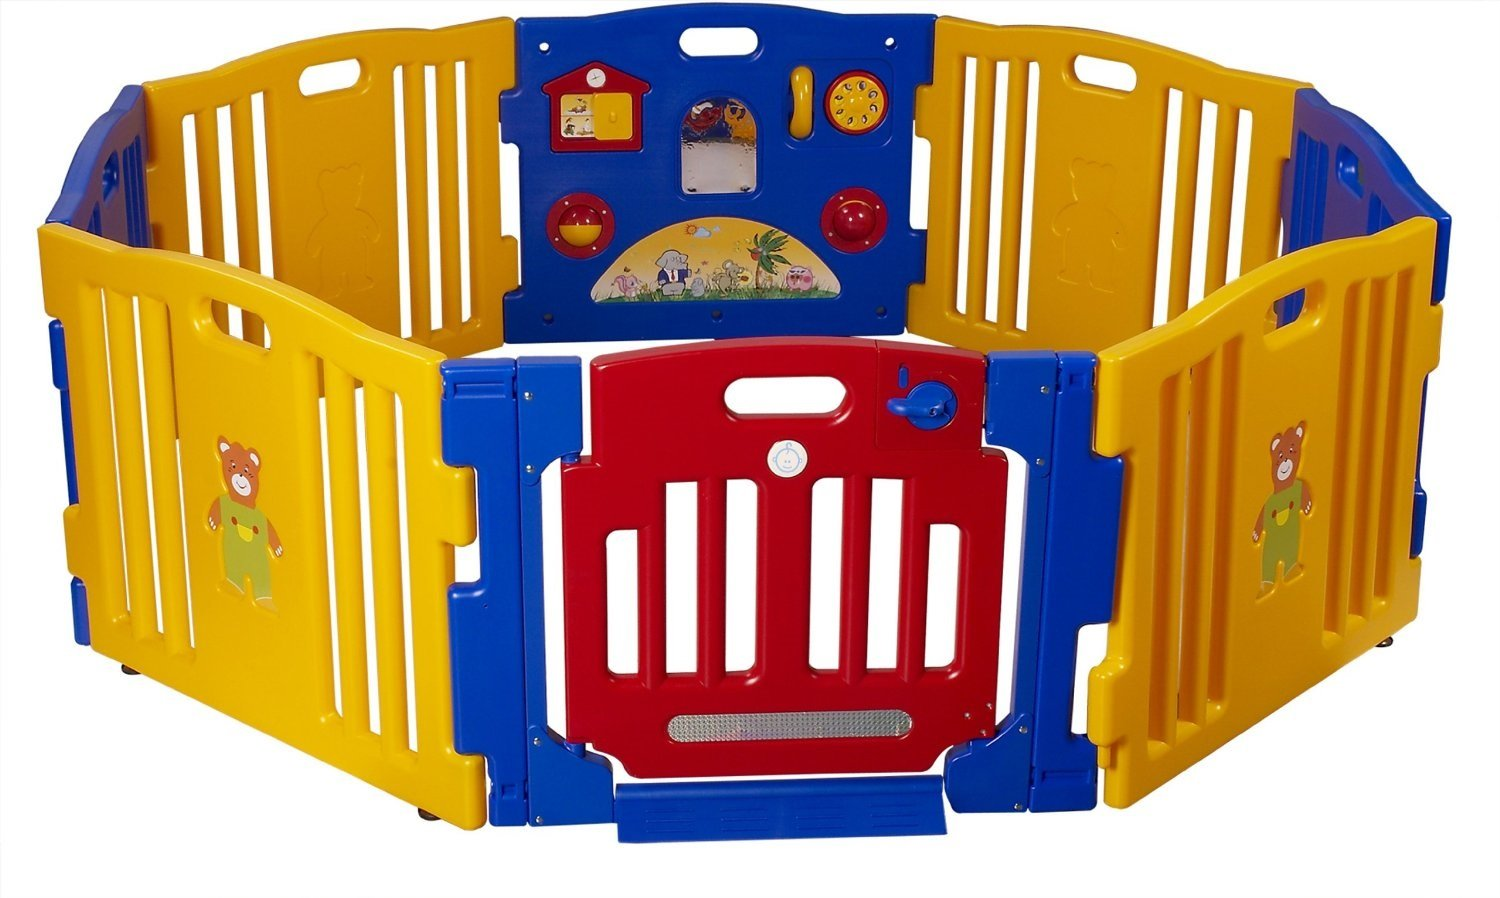 ProSource Baby Kids Playpen 8 Panel Play Center Safety Yard Pen by ProSource (Image #1)